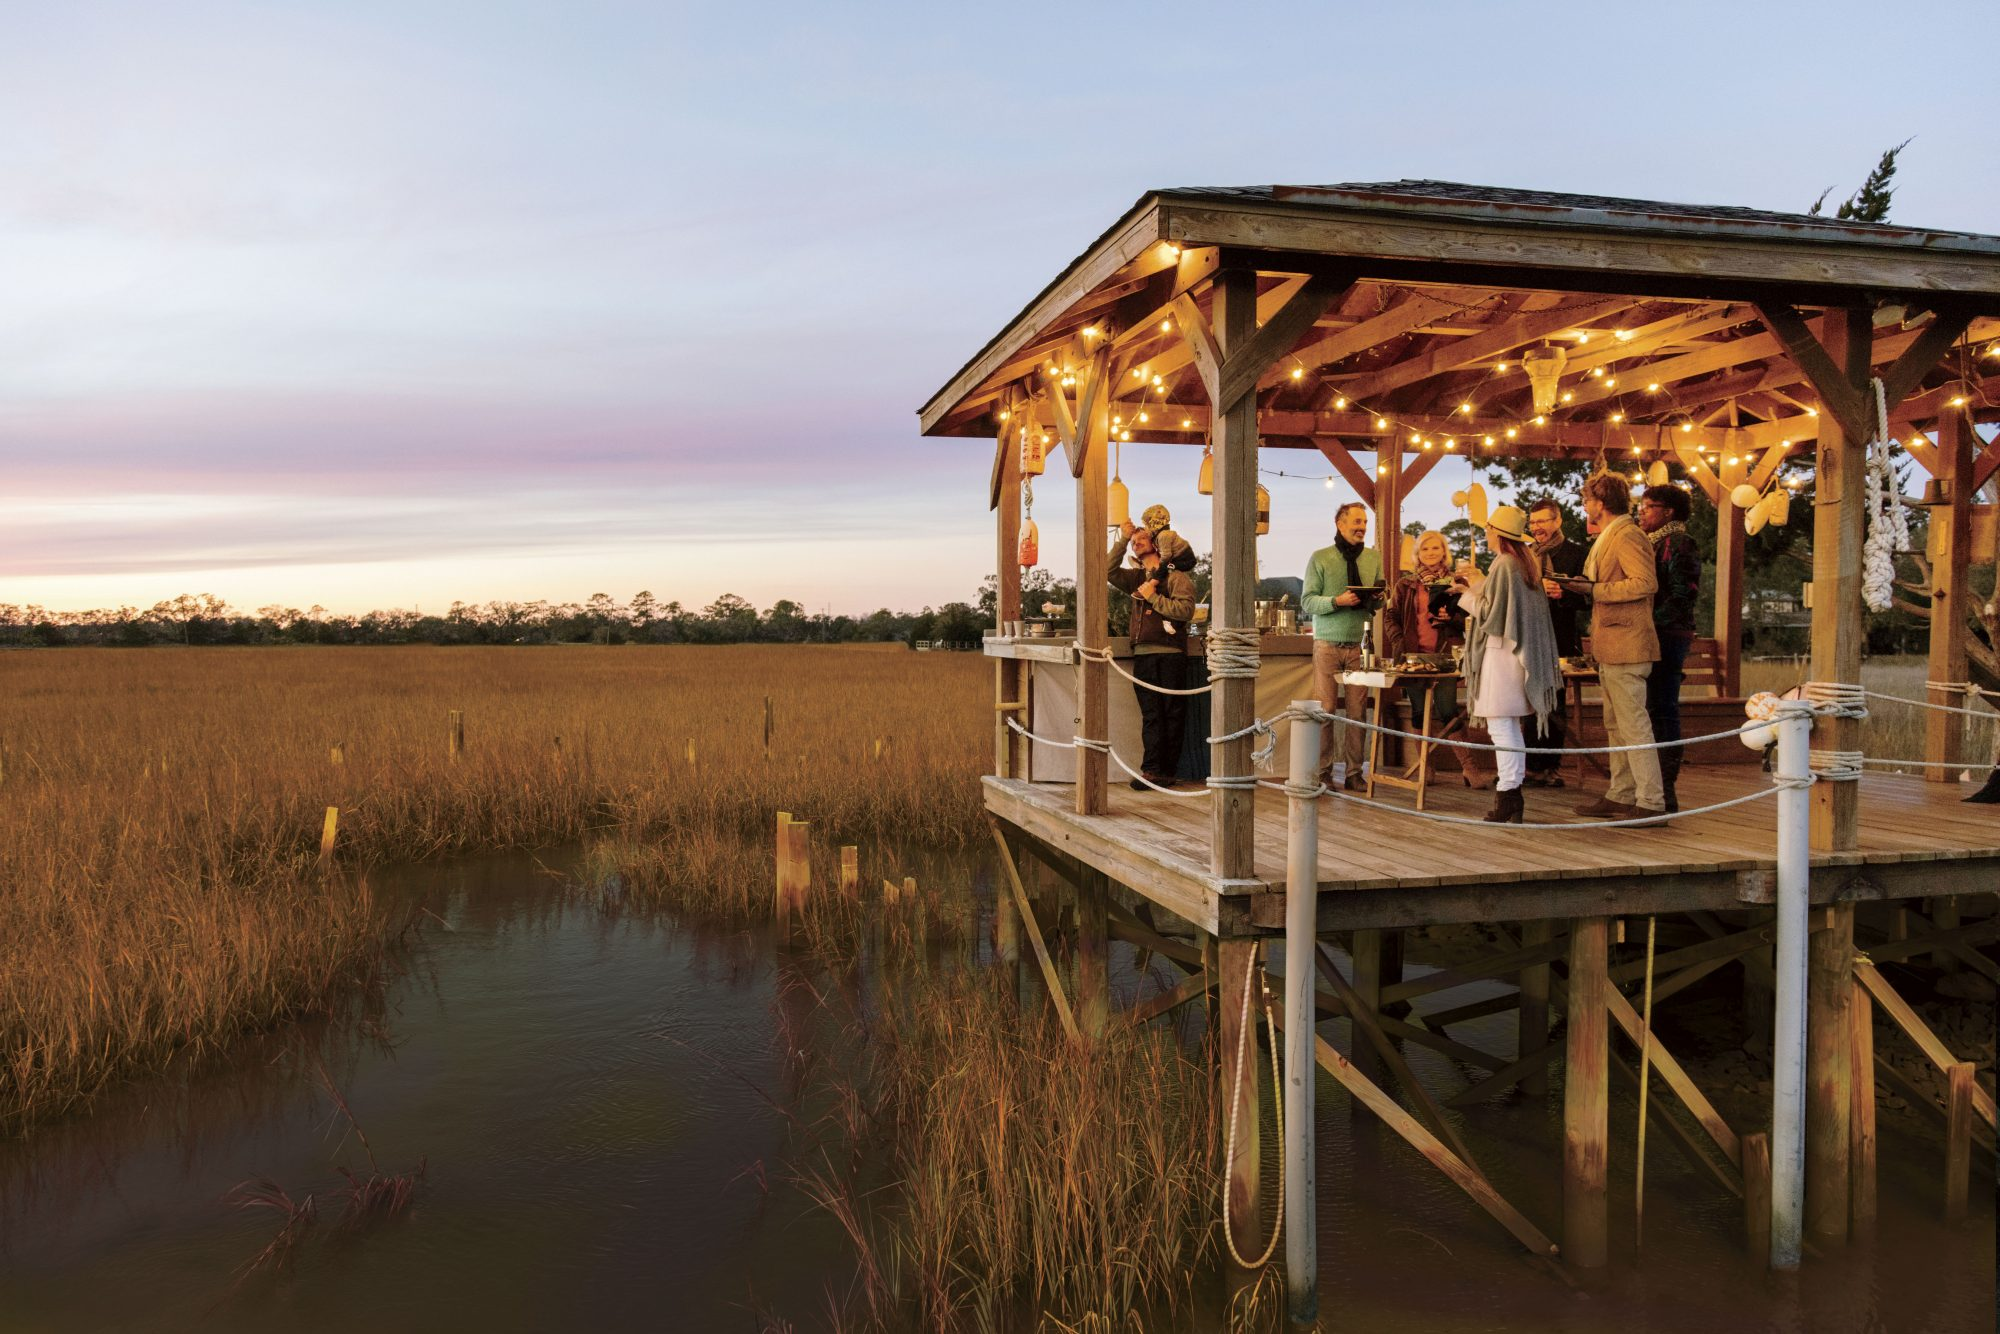 Chef Steven Satterfield's Lowcountry Oyster Roast